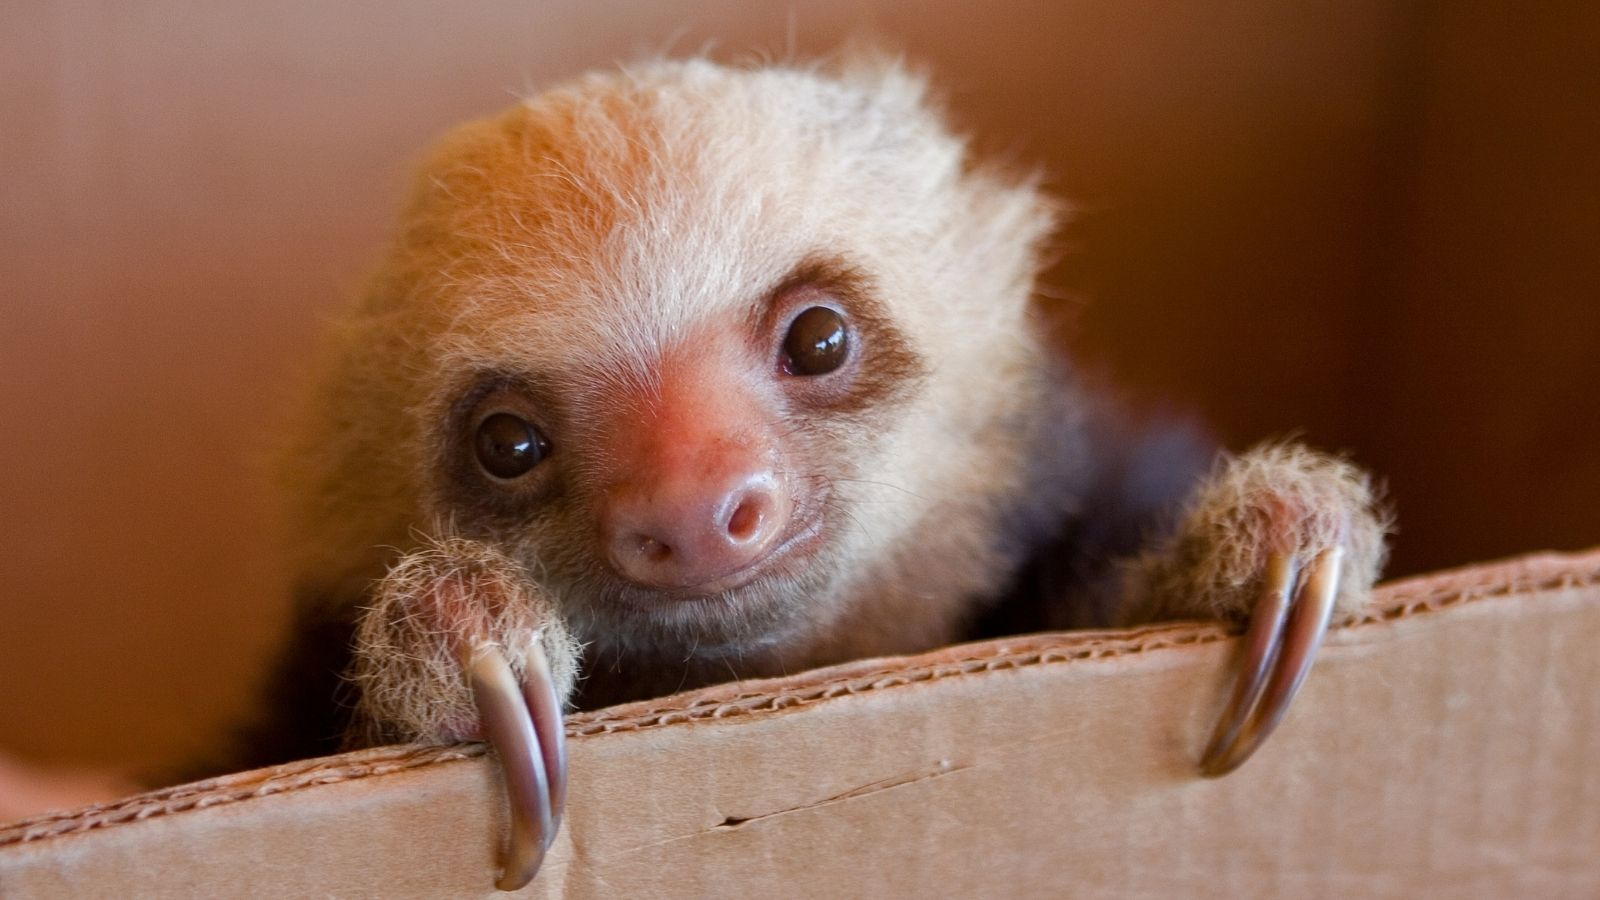 Can You Own a Sloth in Alabama Sloth of The Day